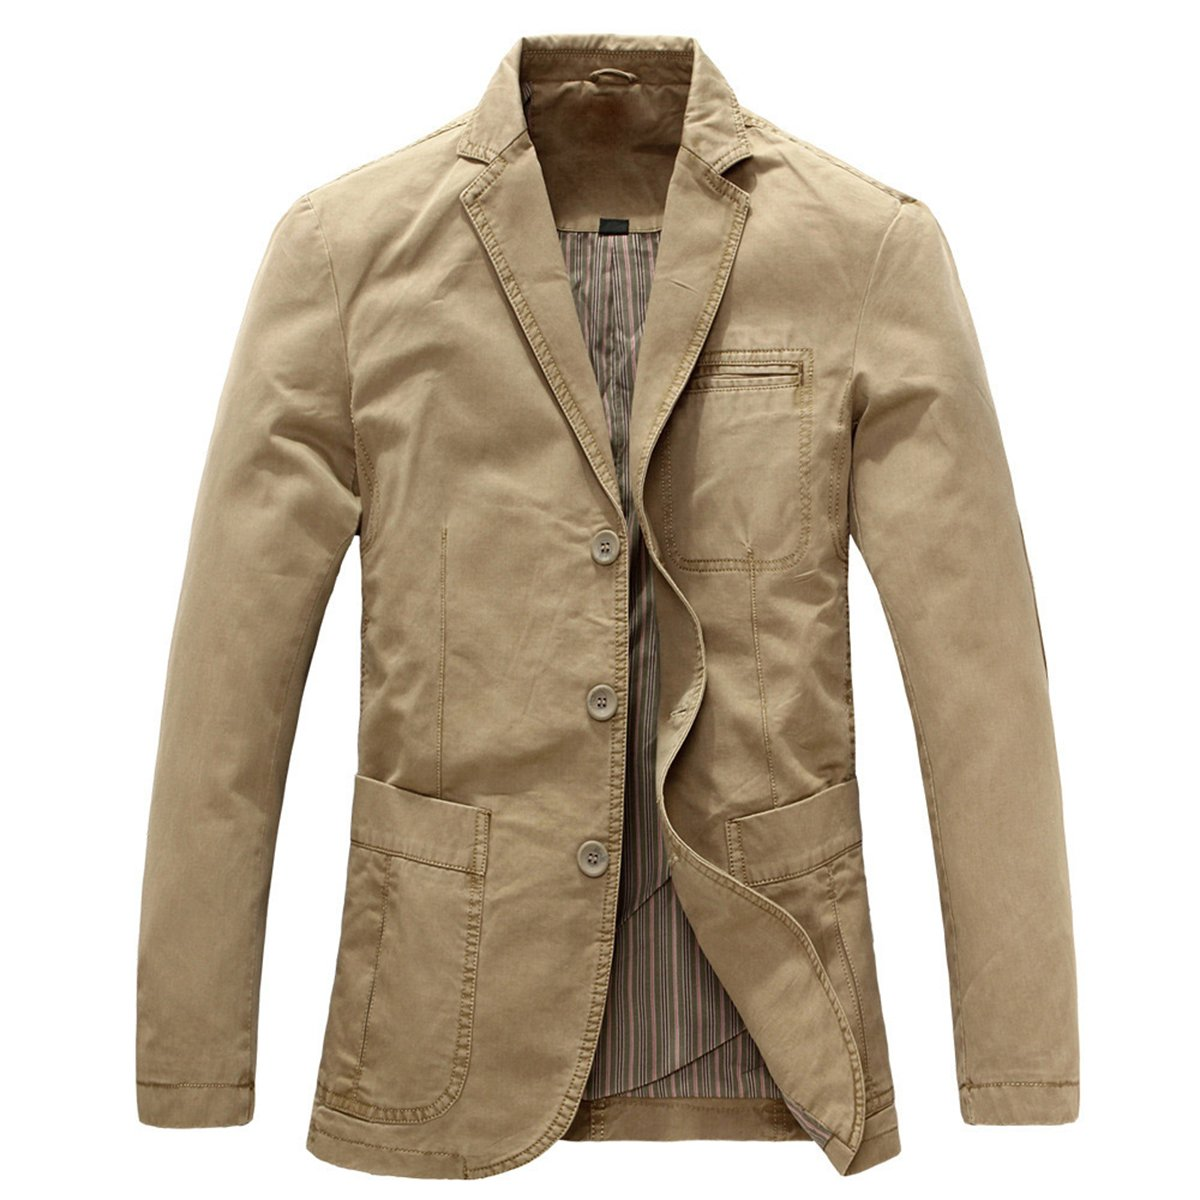 Mens Casual Blazer Slim fit Long Sleeve Jacket Washed Cotton 3-Button Casual Suits Blazer Jackets Khaki